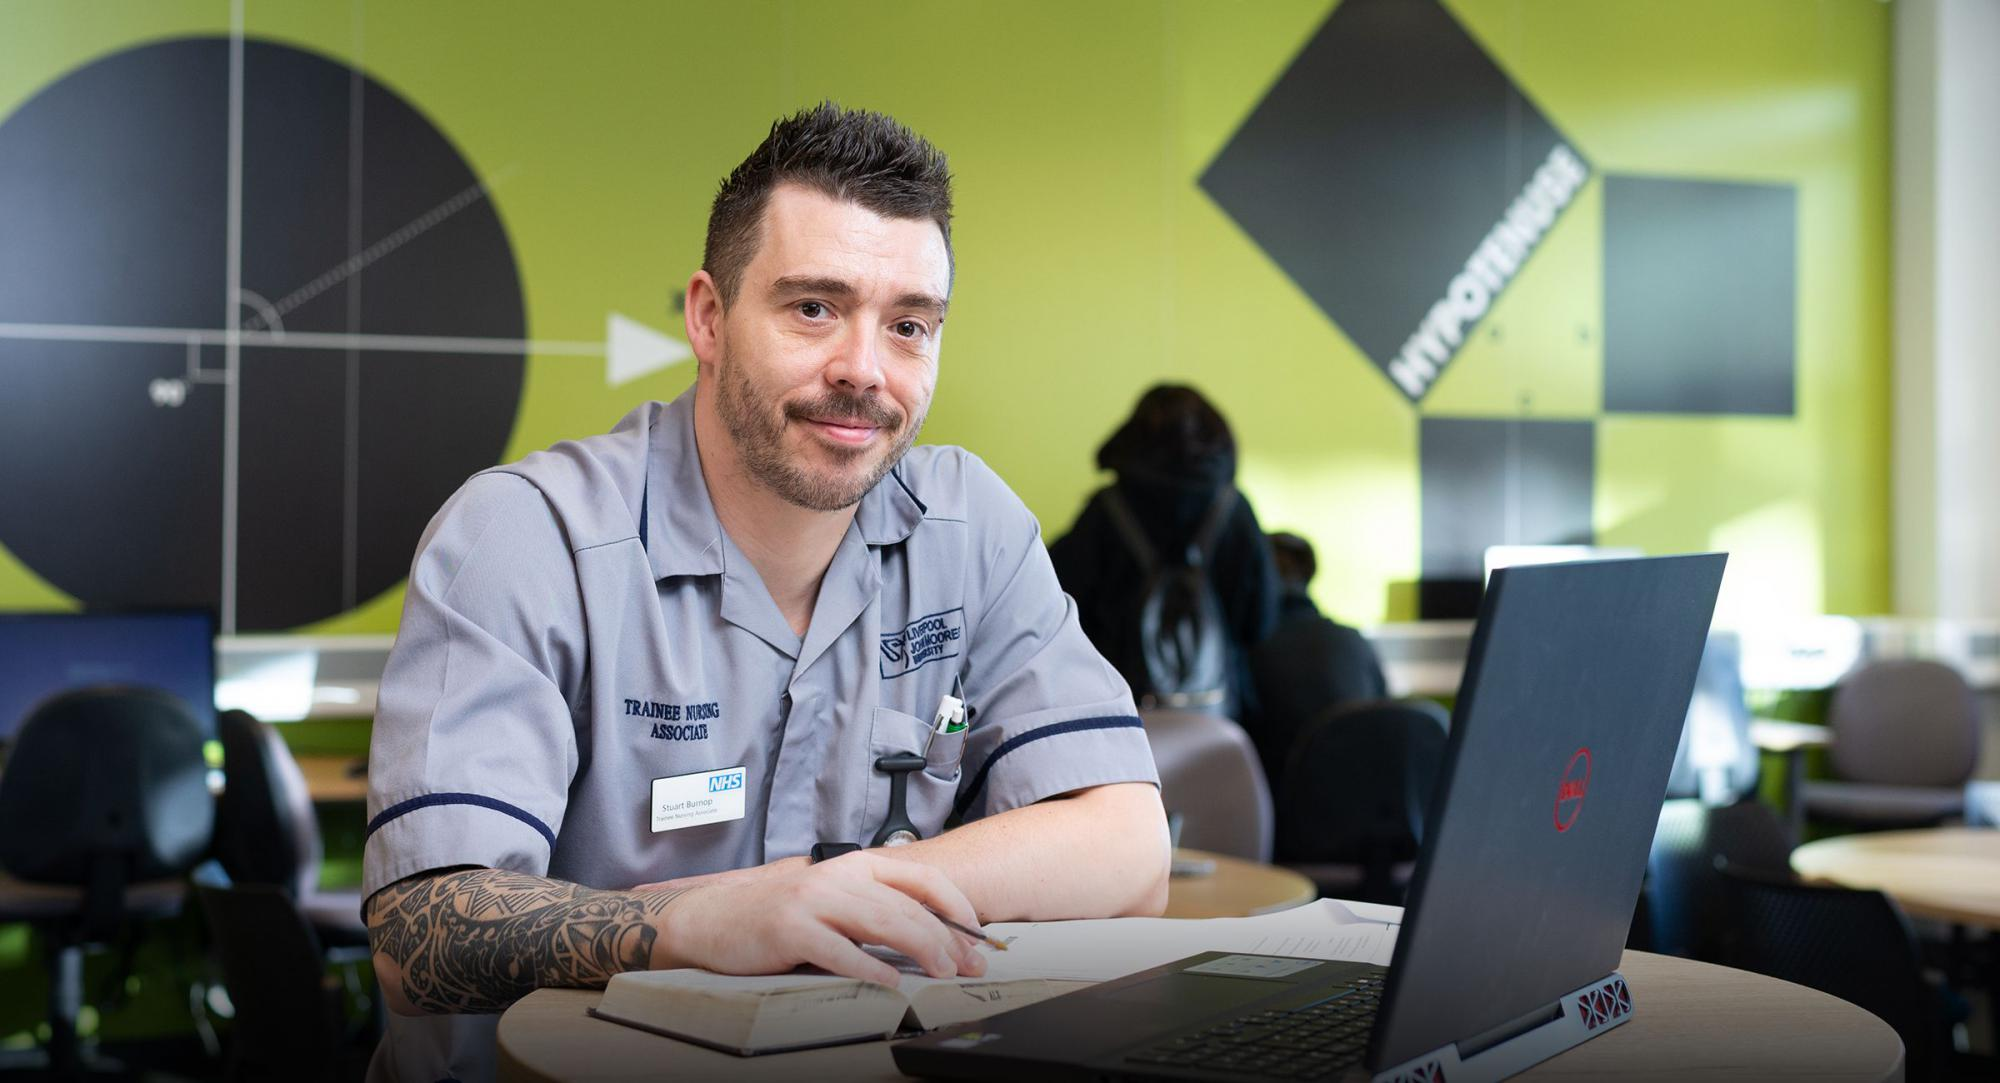 Adult Learner studying Maths, English and Nursing at Burnley College